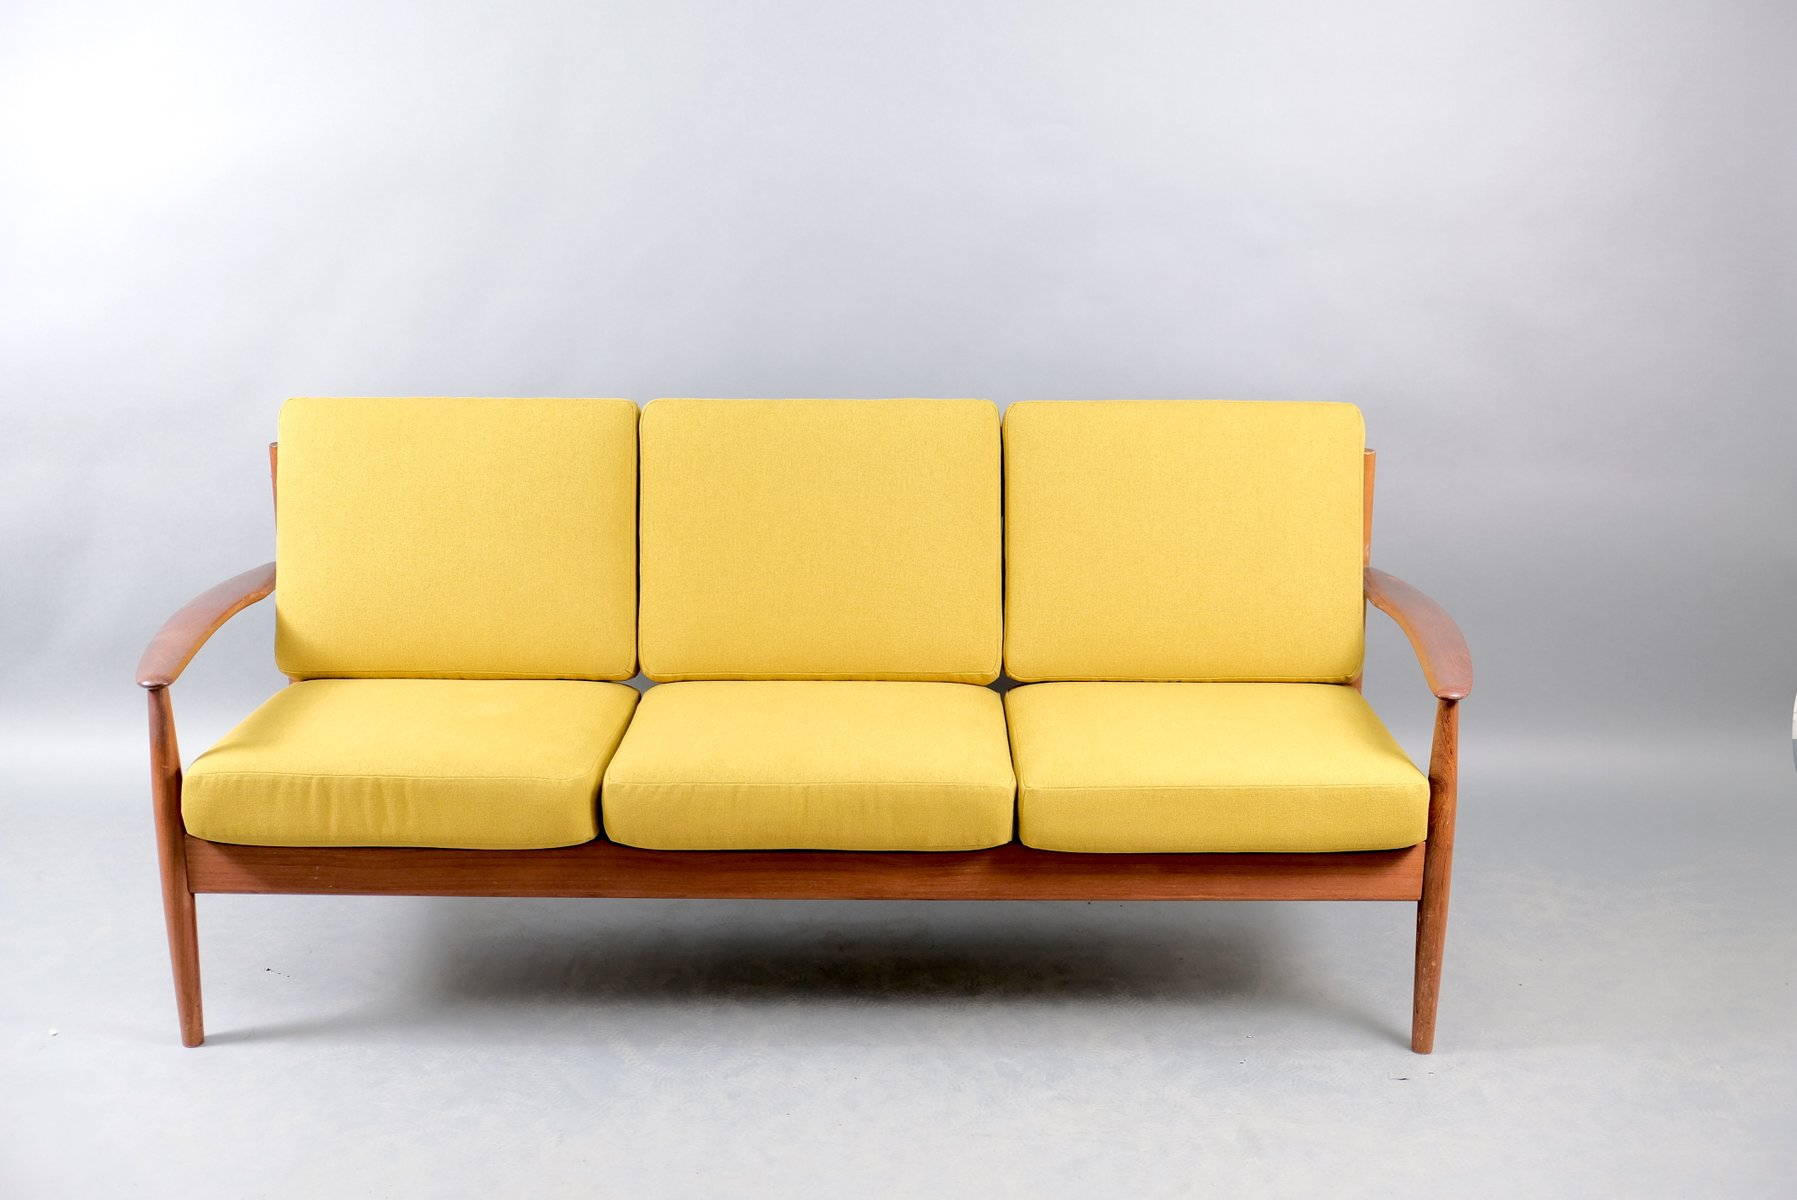 Mid-Century Danish Teak Sofa by Grete Jalk for France & Søn / France & Daverkosen